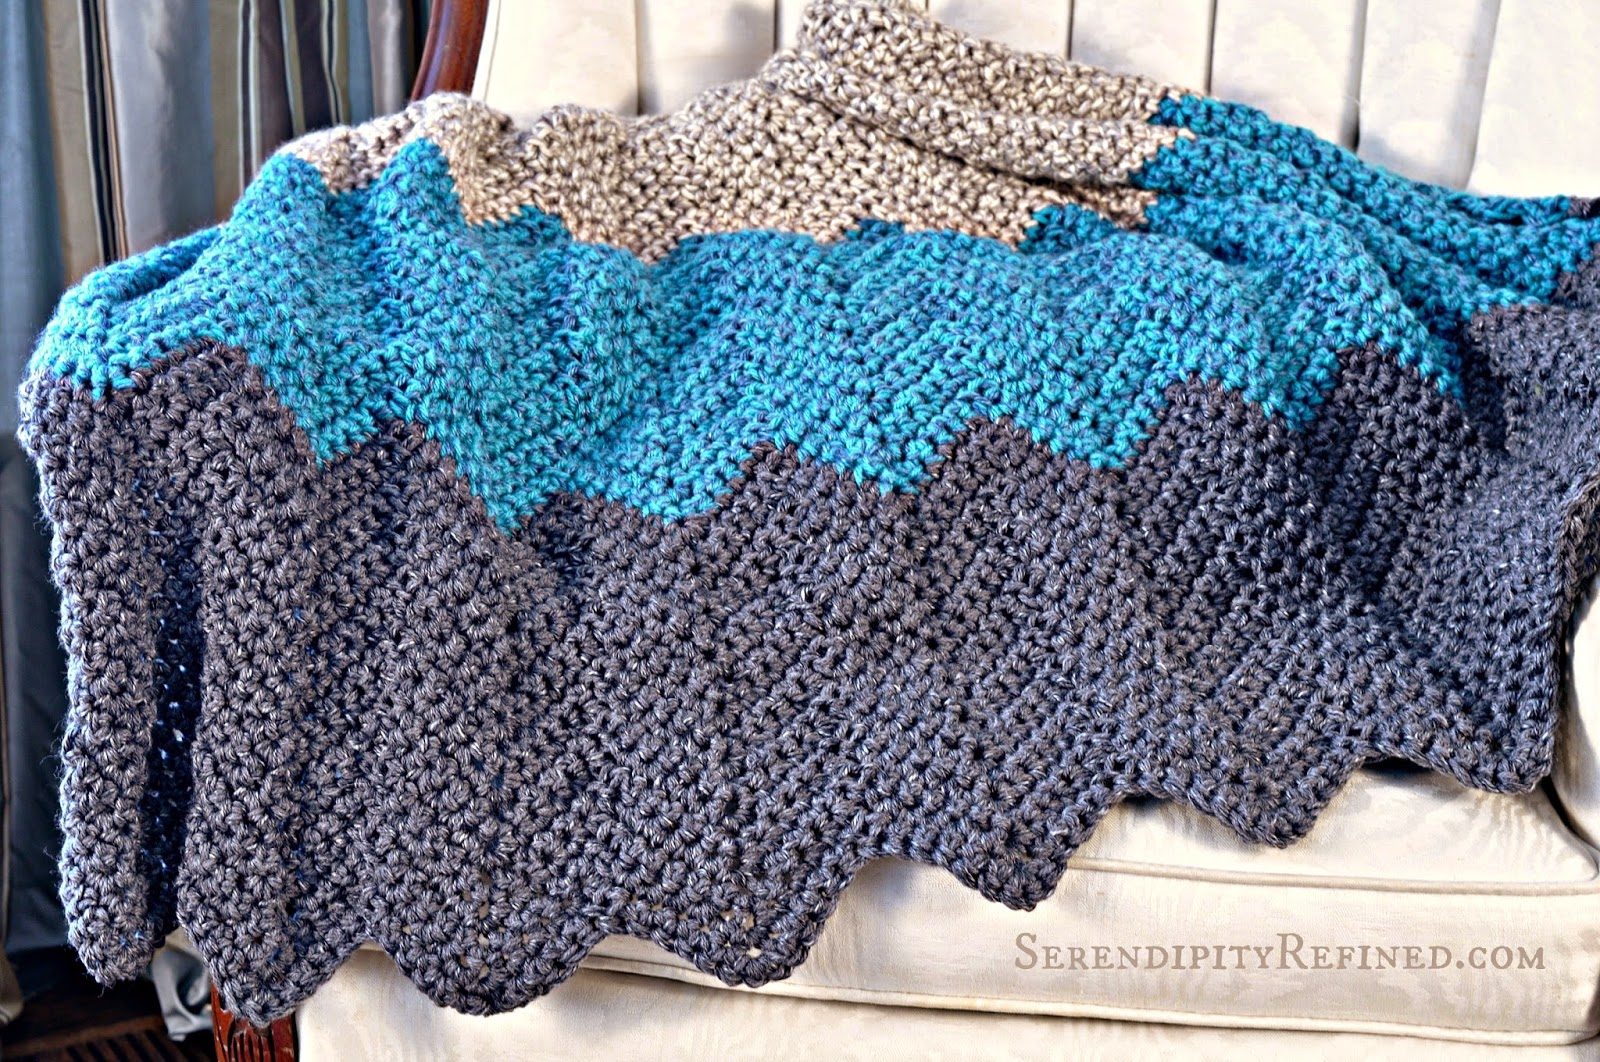 Crochet Beginner Afghan Patterns : Serendipity Refined Blog: Easy Crochet Throw Blanket Pattern